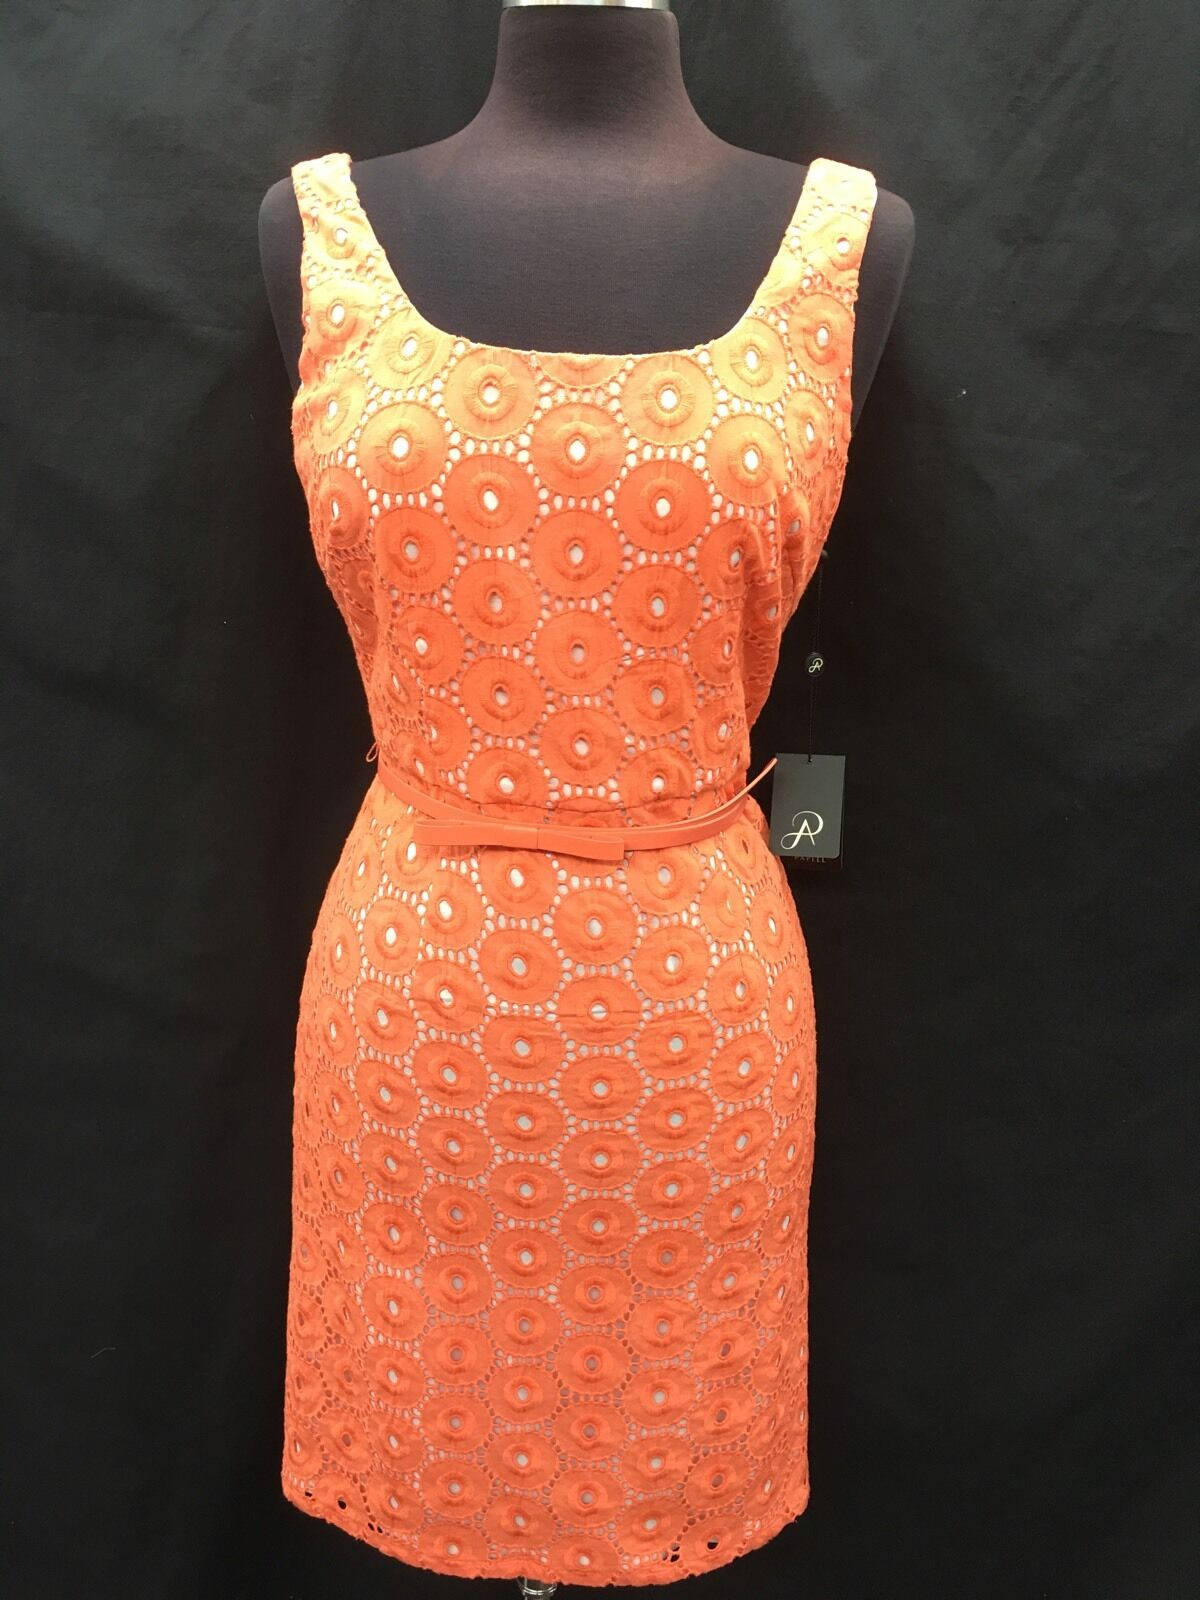 ADRIANNA PAPELL DRESS COTTON RETAIL 8 LINED NEW WITH TAG LENGTH 38